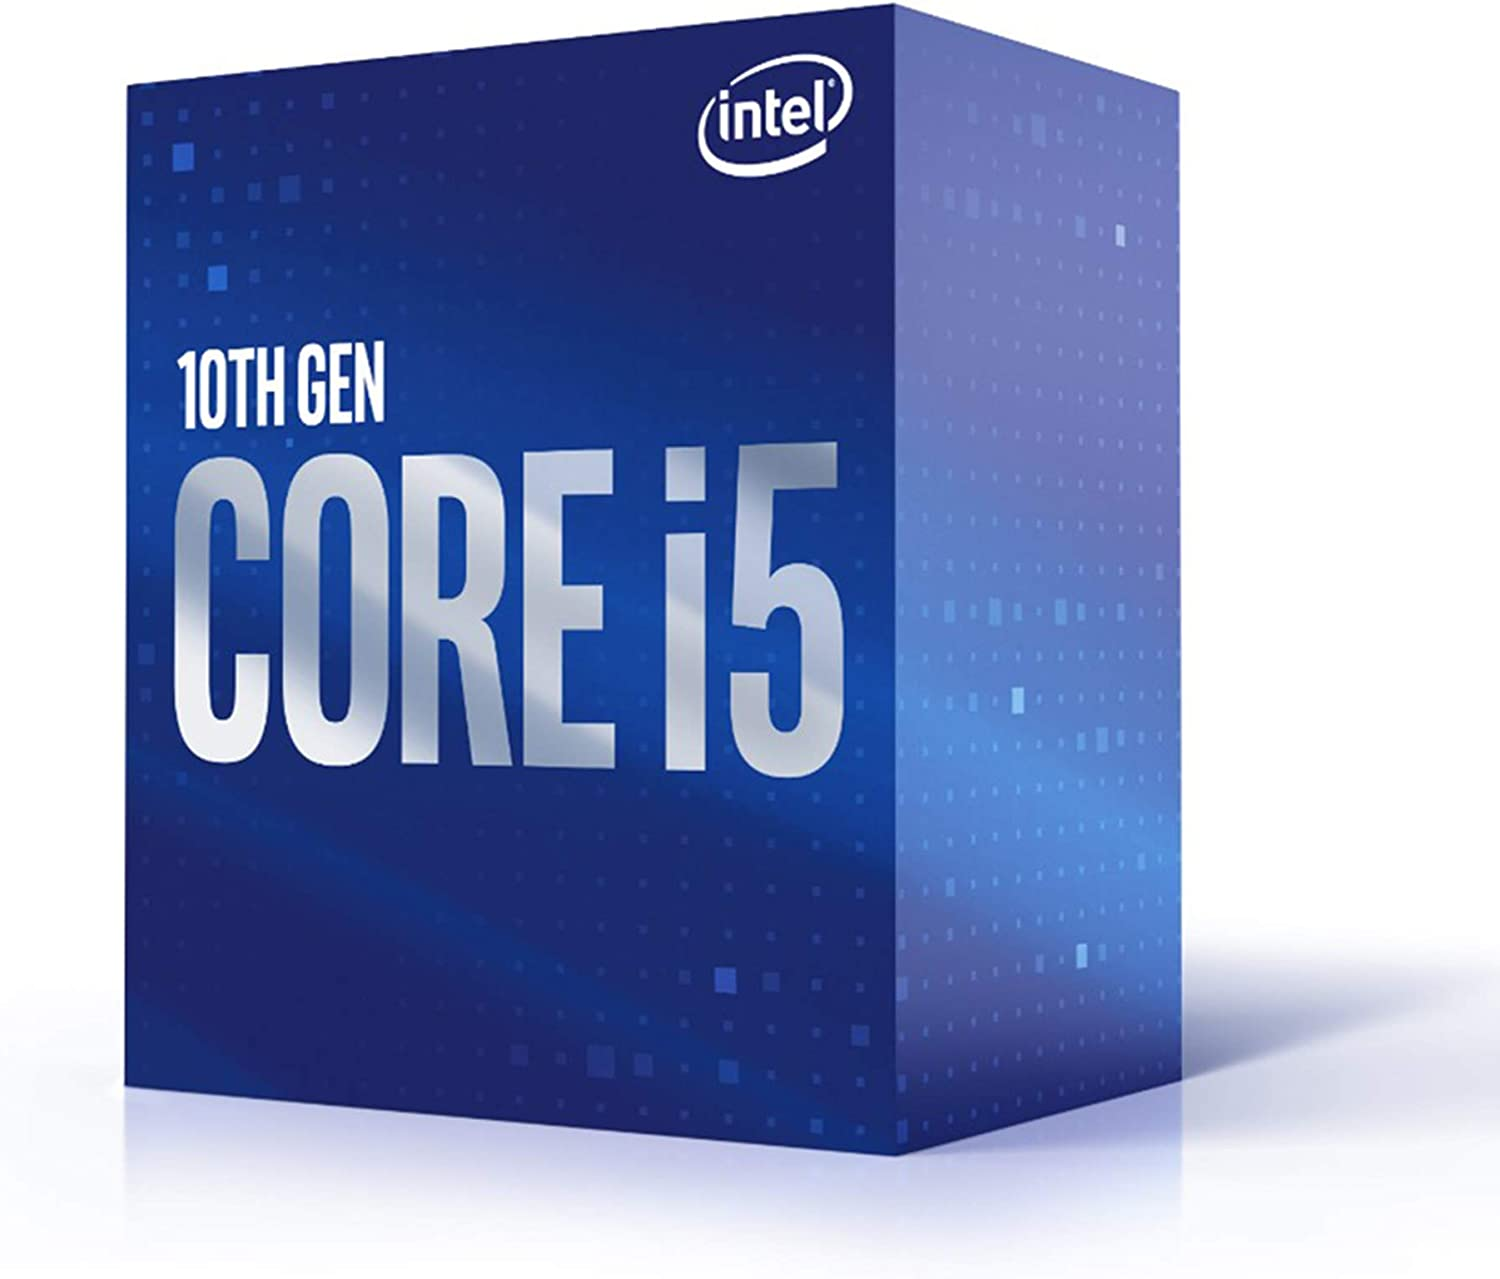 Intel 400 Series chipset Intel Core i5-10500 Desktop Processor 6 Cores up to 4.5 GHz LGA1200 65W